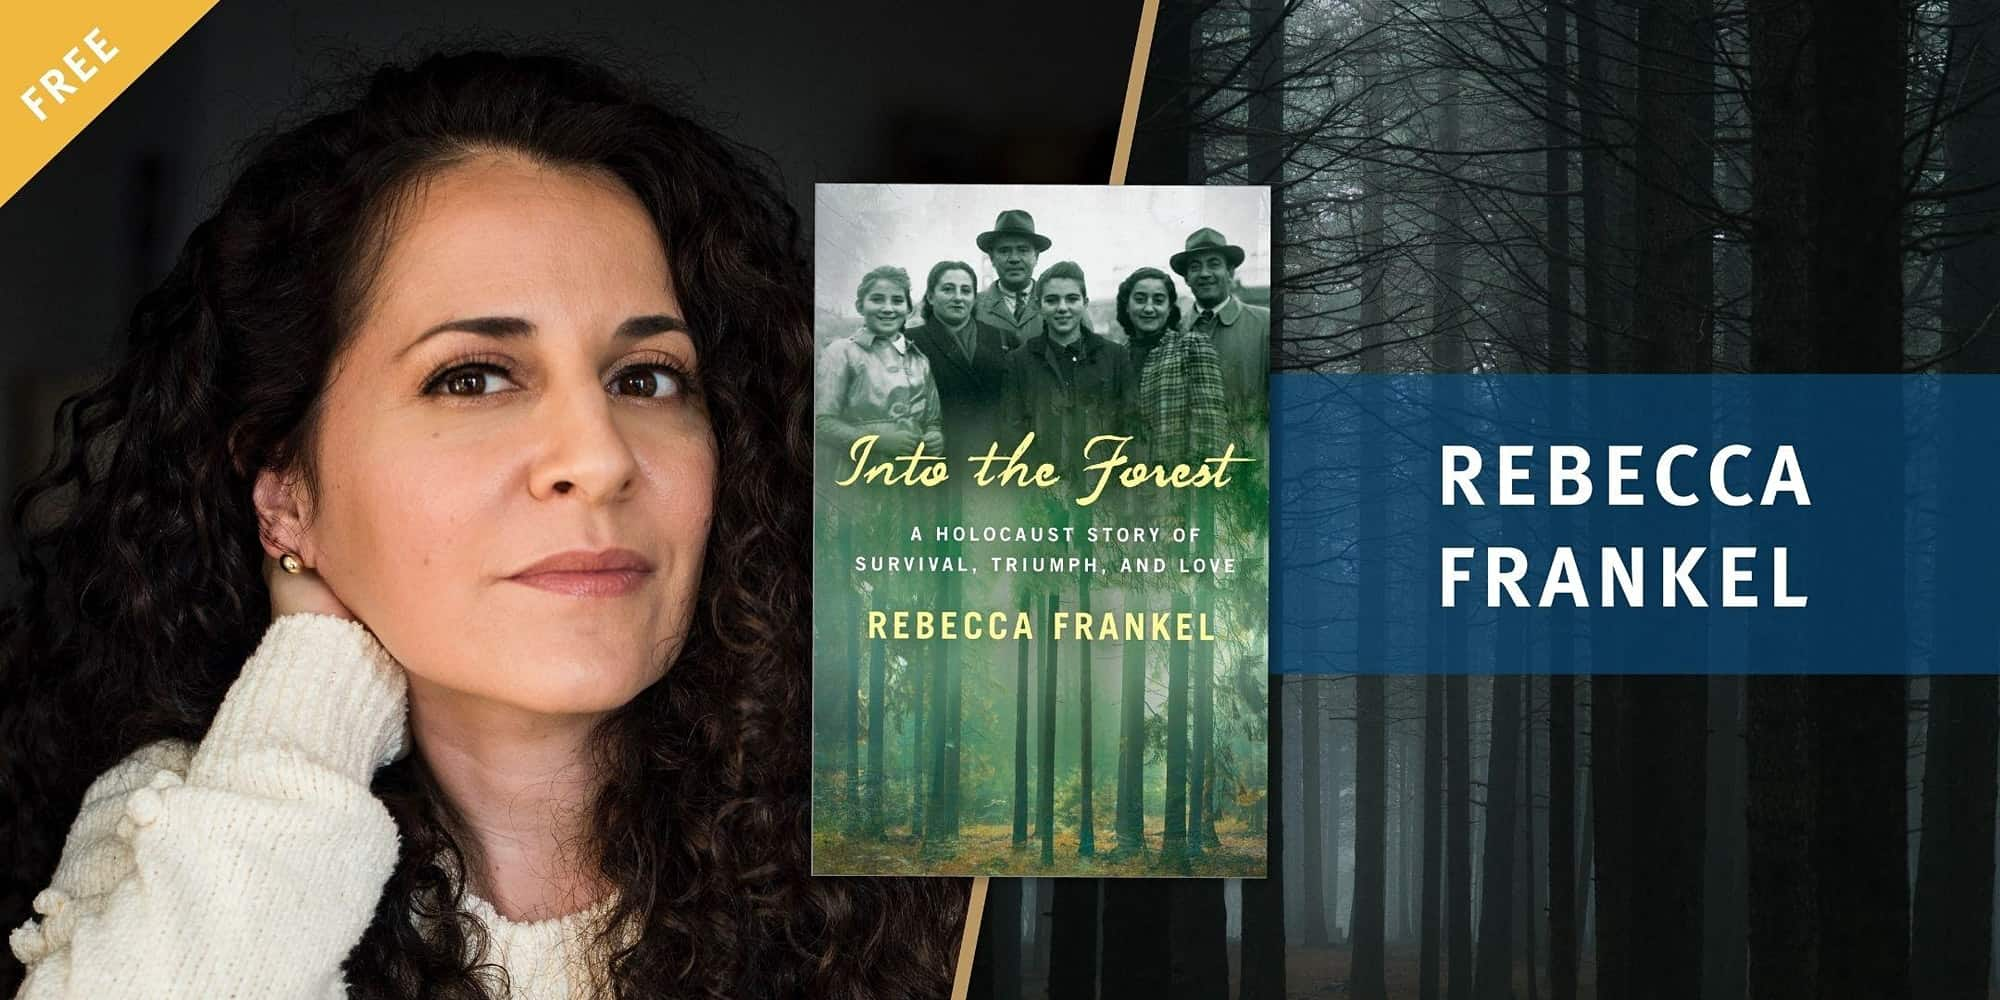 Book Talk: Rebecca Frankel's Into the Forest